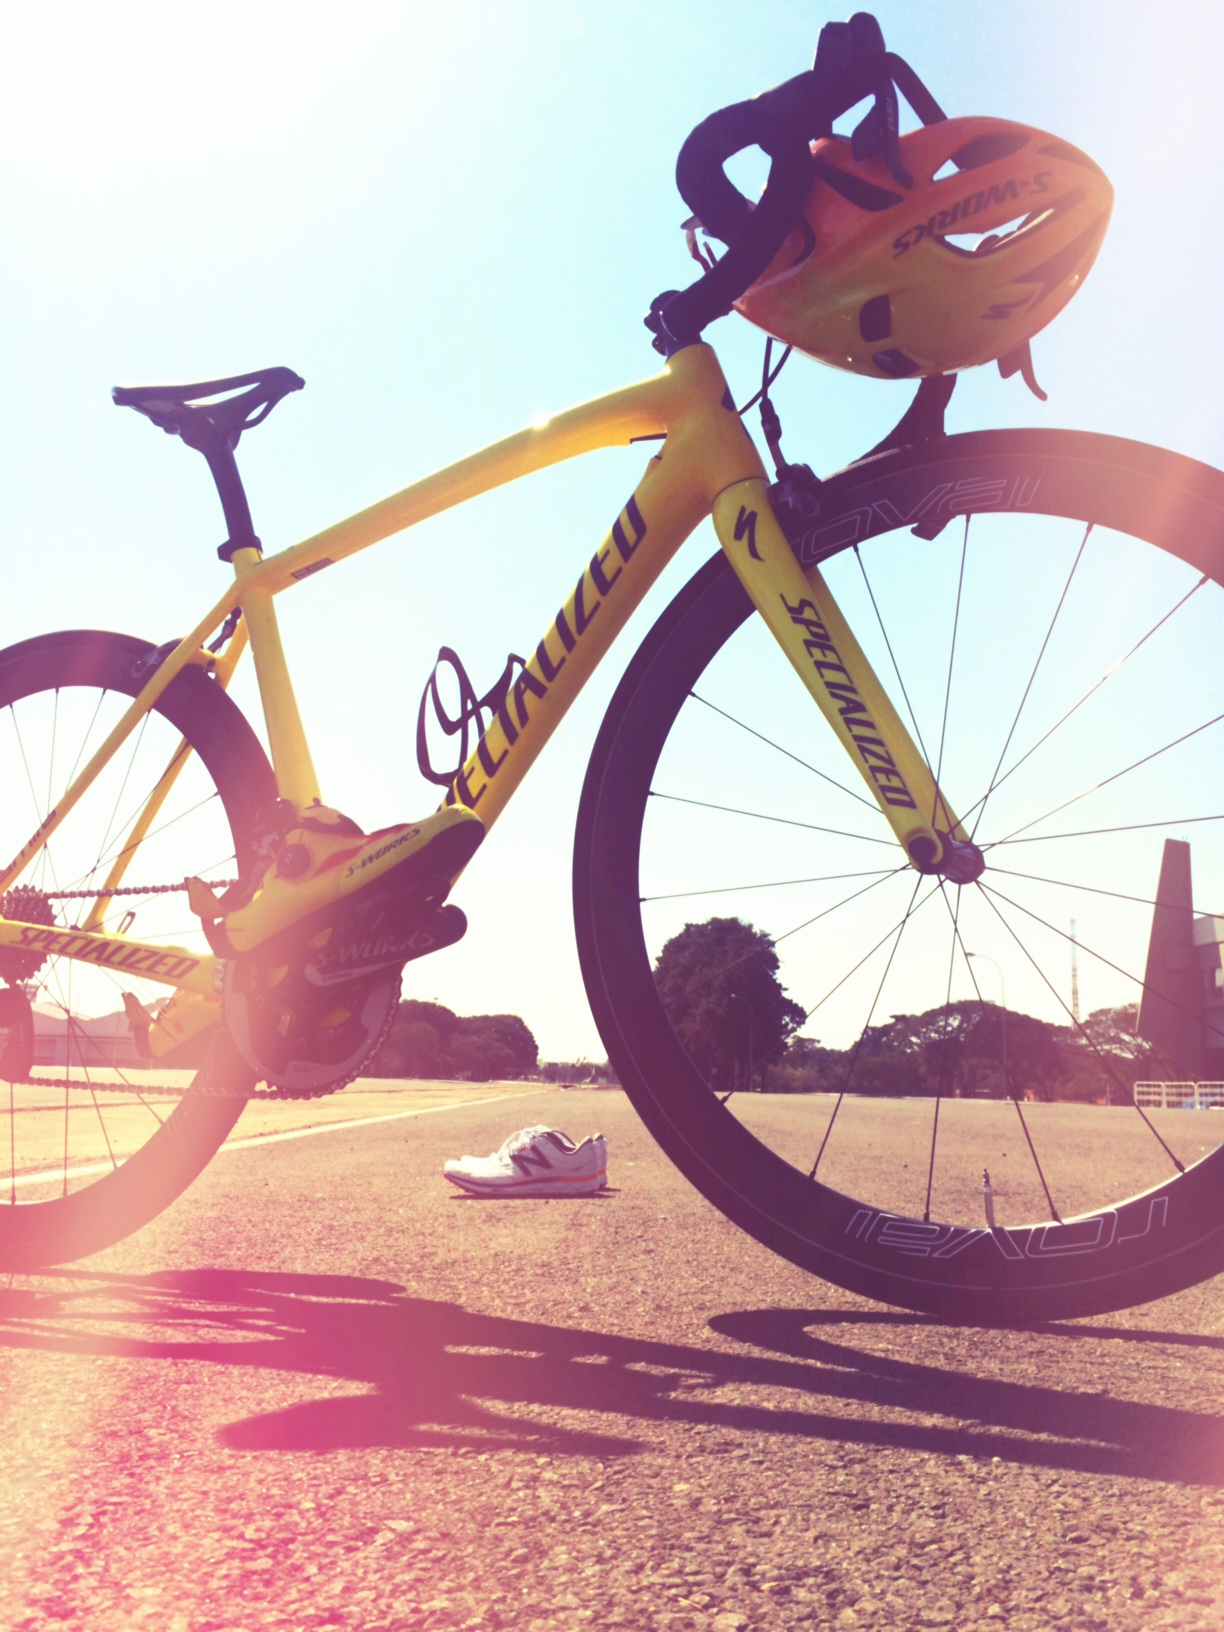 Non Stanford′s cool Specialized bike. Paint changed colour from orange to yellow over 22degrees!